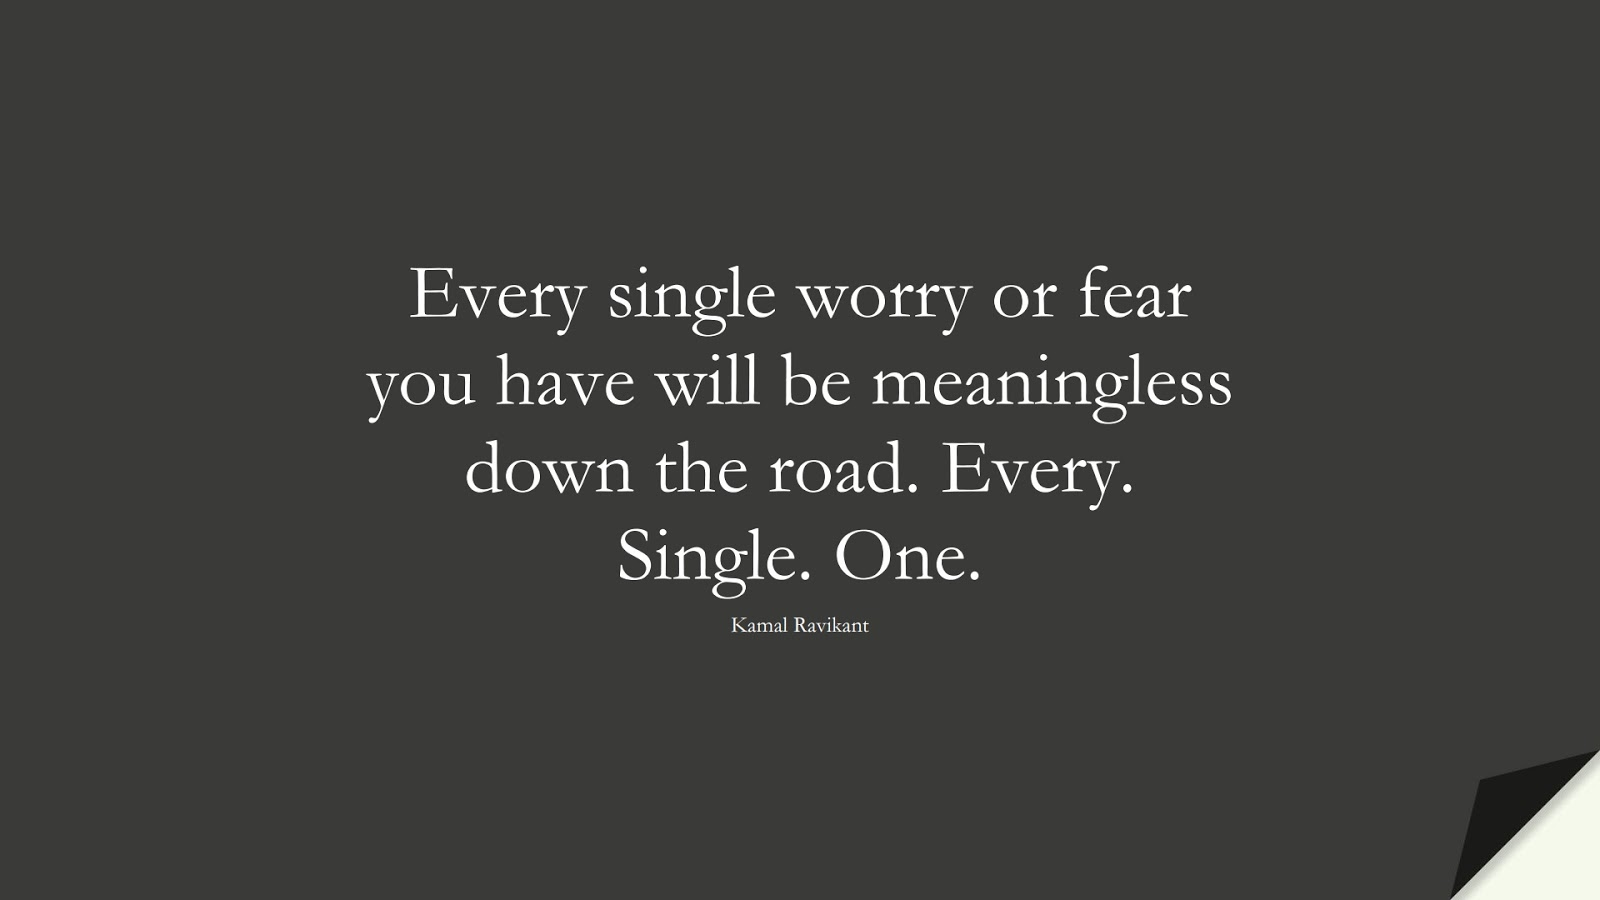 Every single worry or fear you have will be meaningless down the road. Every. Single. One. (Kamal Ravikant);  #AnxietyQuotes